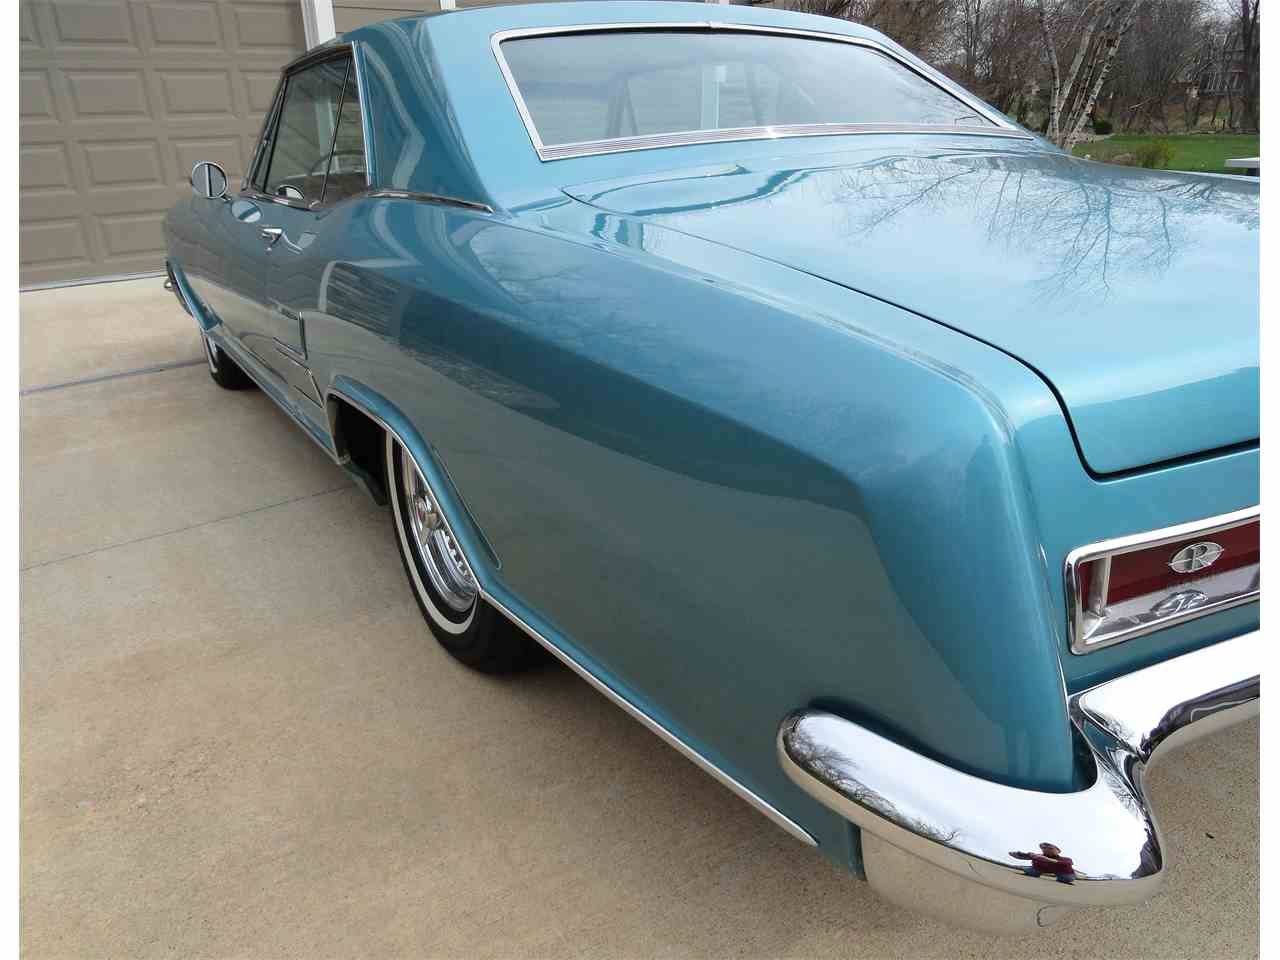 Large Picture of '64 Buick Riviera located in Urbandale Iowa - $31,500.00 Offered by a Private Seller - NCAV